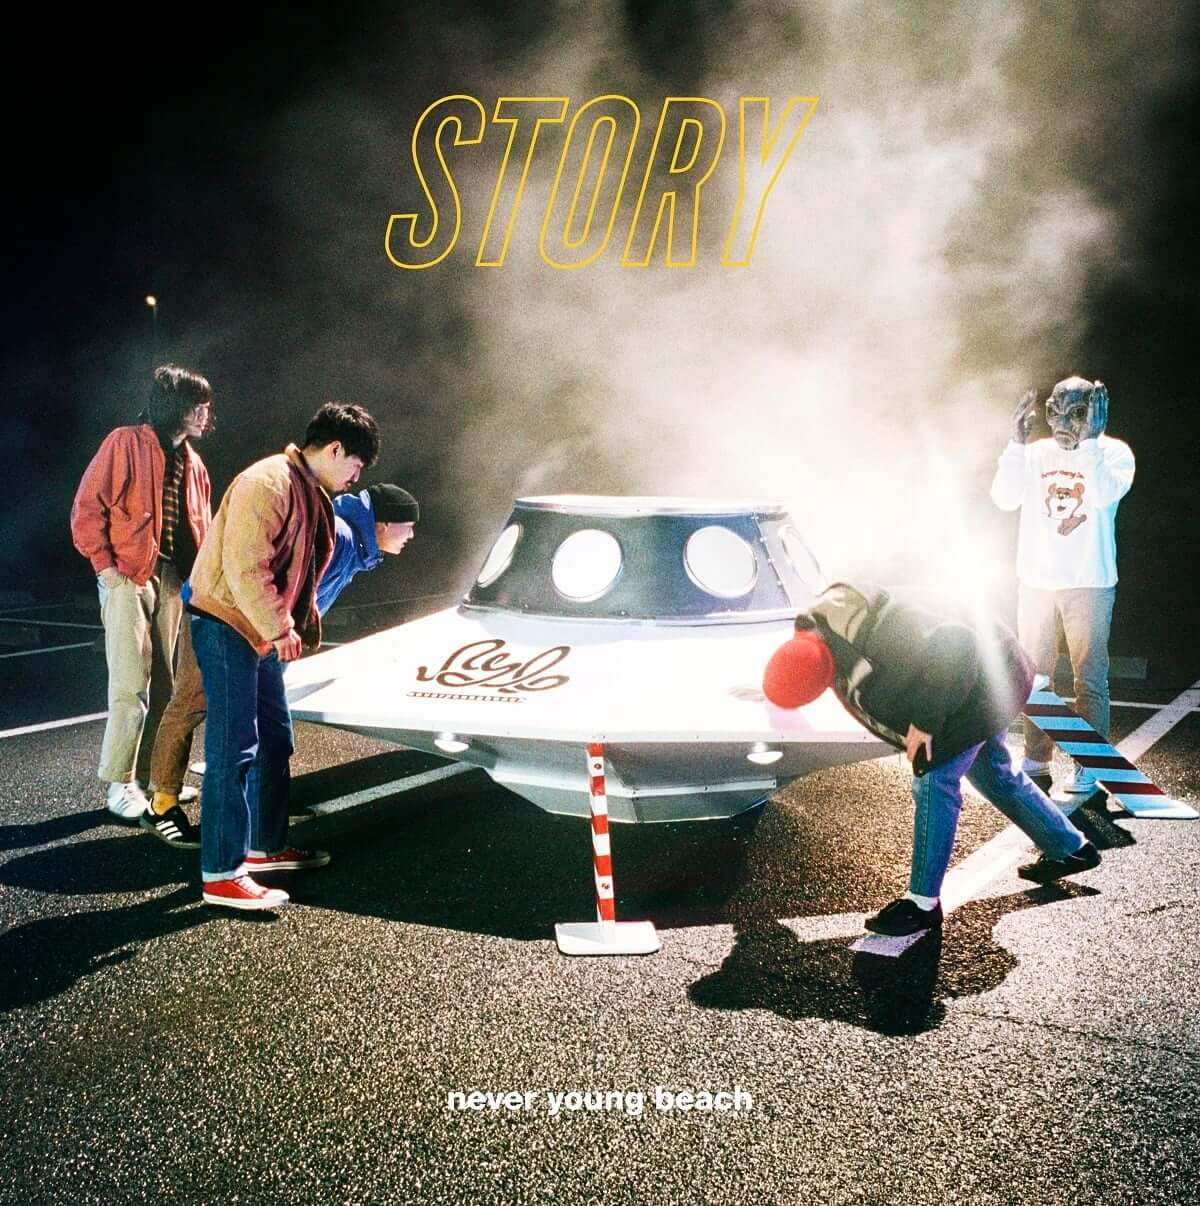 never young beach、ニューアルバムより新曲「STORY」が本日先行配信スタート music190410_neveryoungbeach_2-1200x1206